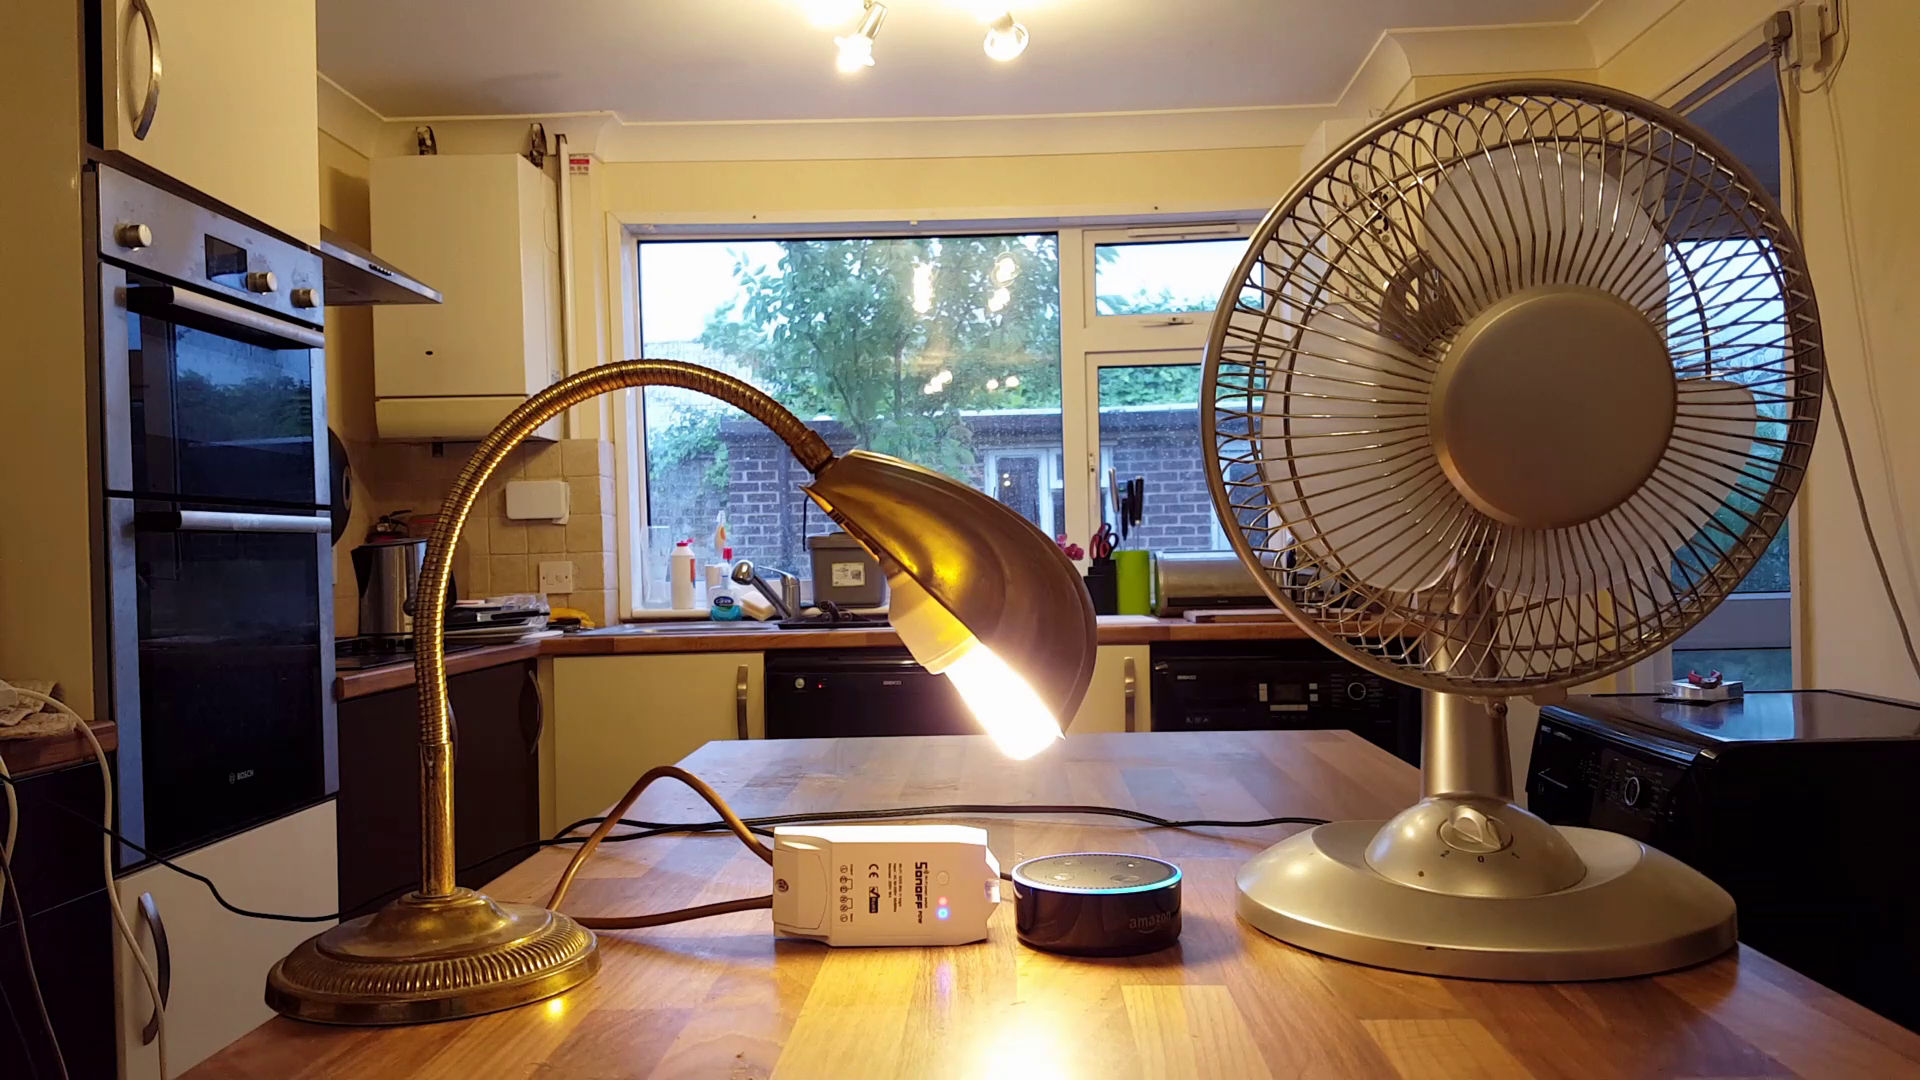 A desktop fan, a lamp, and an Amazon Alexa sit on a kitchen table